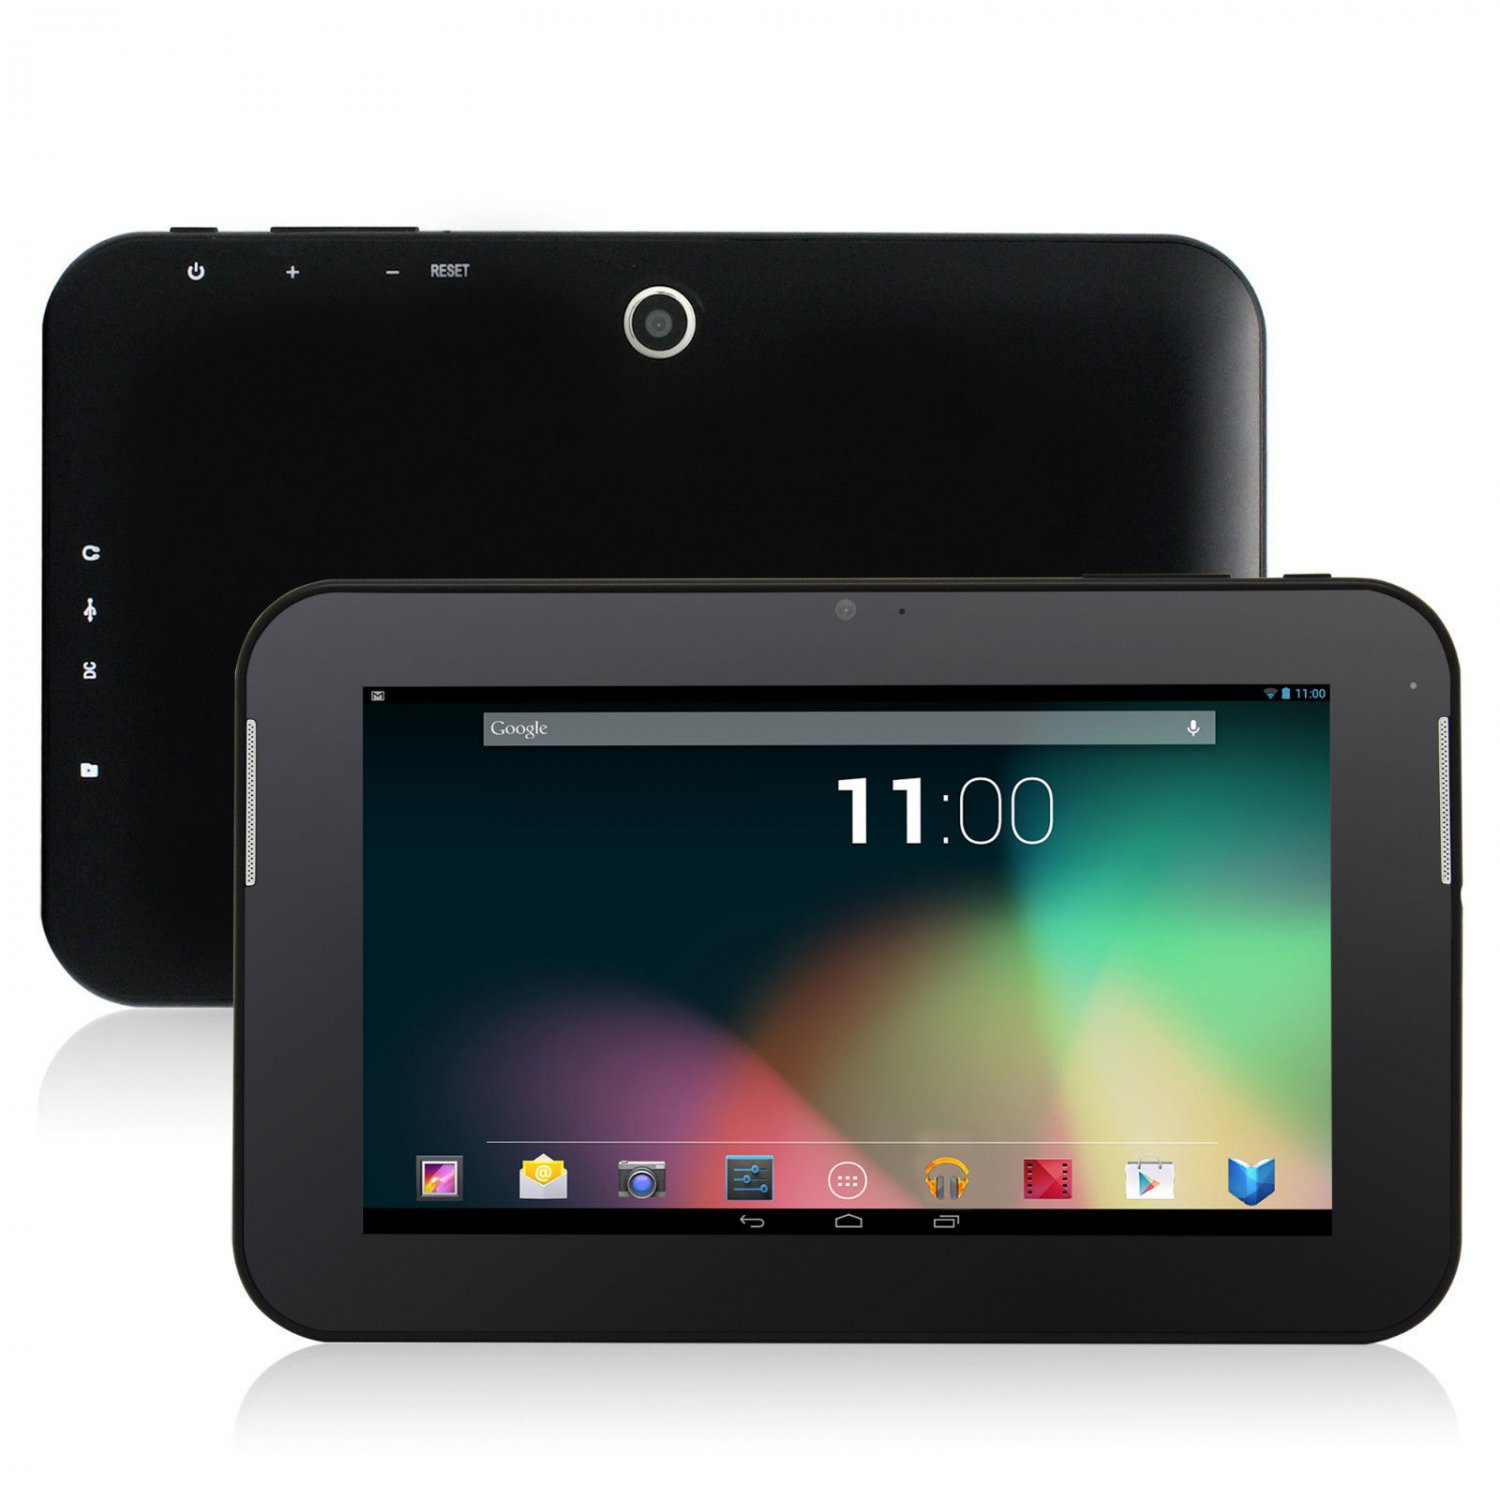 Black 8GB Dual Core Google Android 4.2 Tablet PC Cortex A9 3G 2 Camera Bundle Case